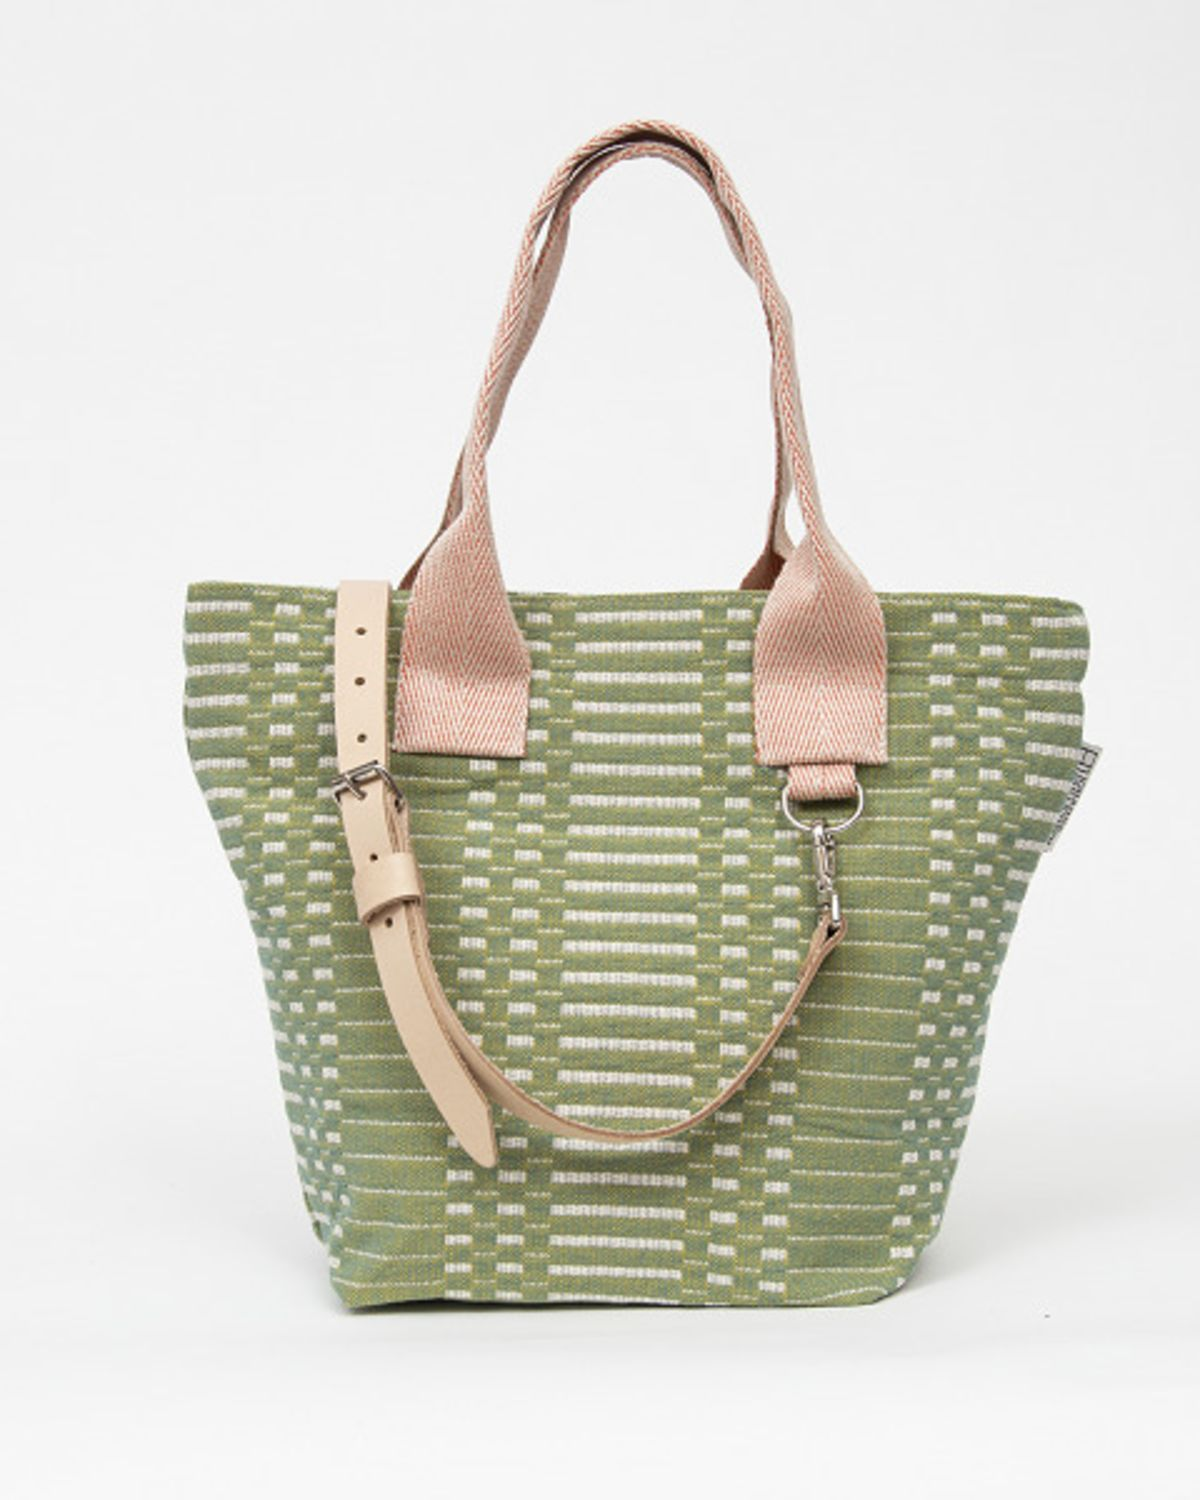 Johanna-Gullichsen-Sakura-Bag-Helios-Almond-light-leather-strap